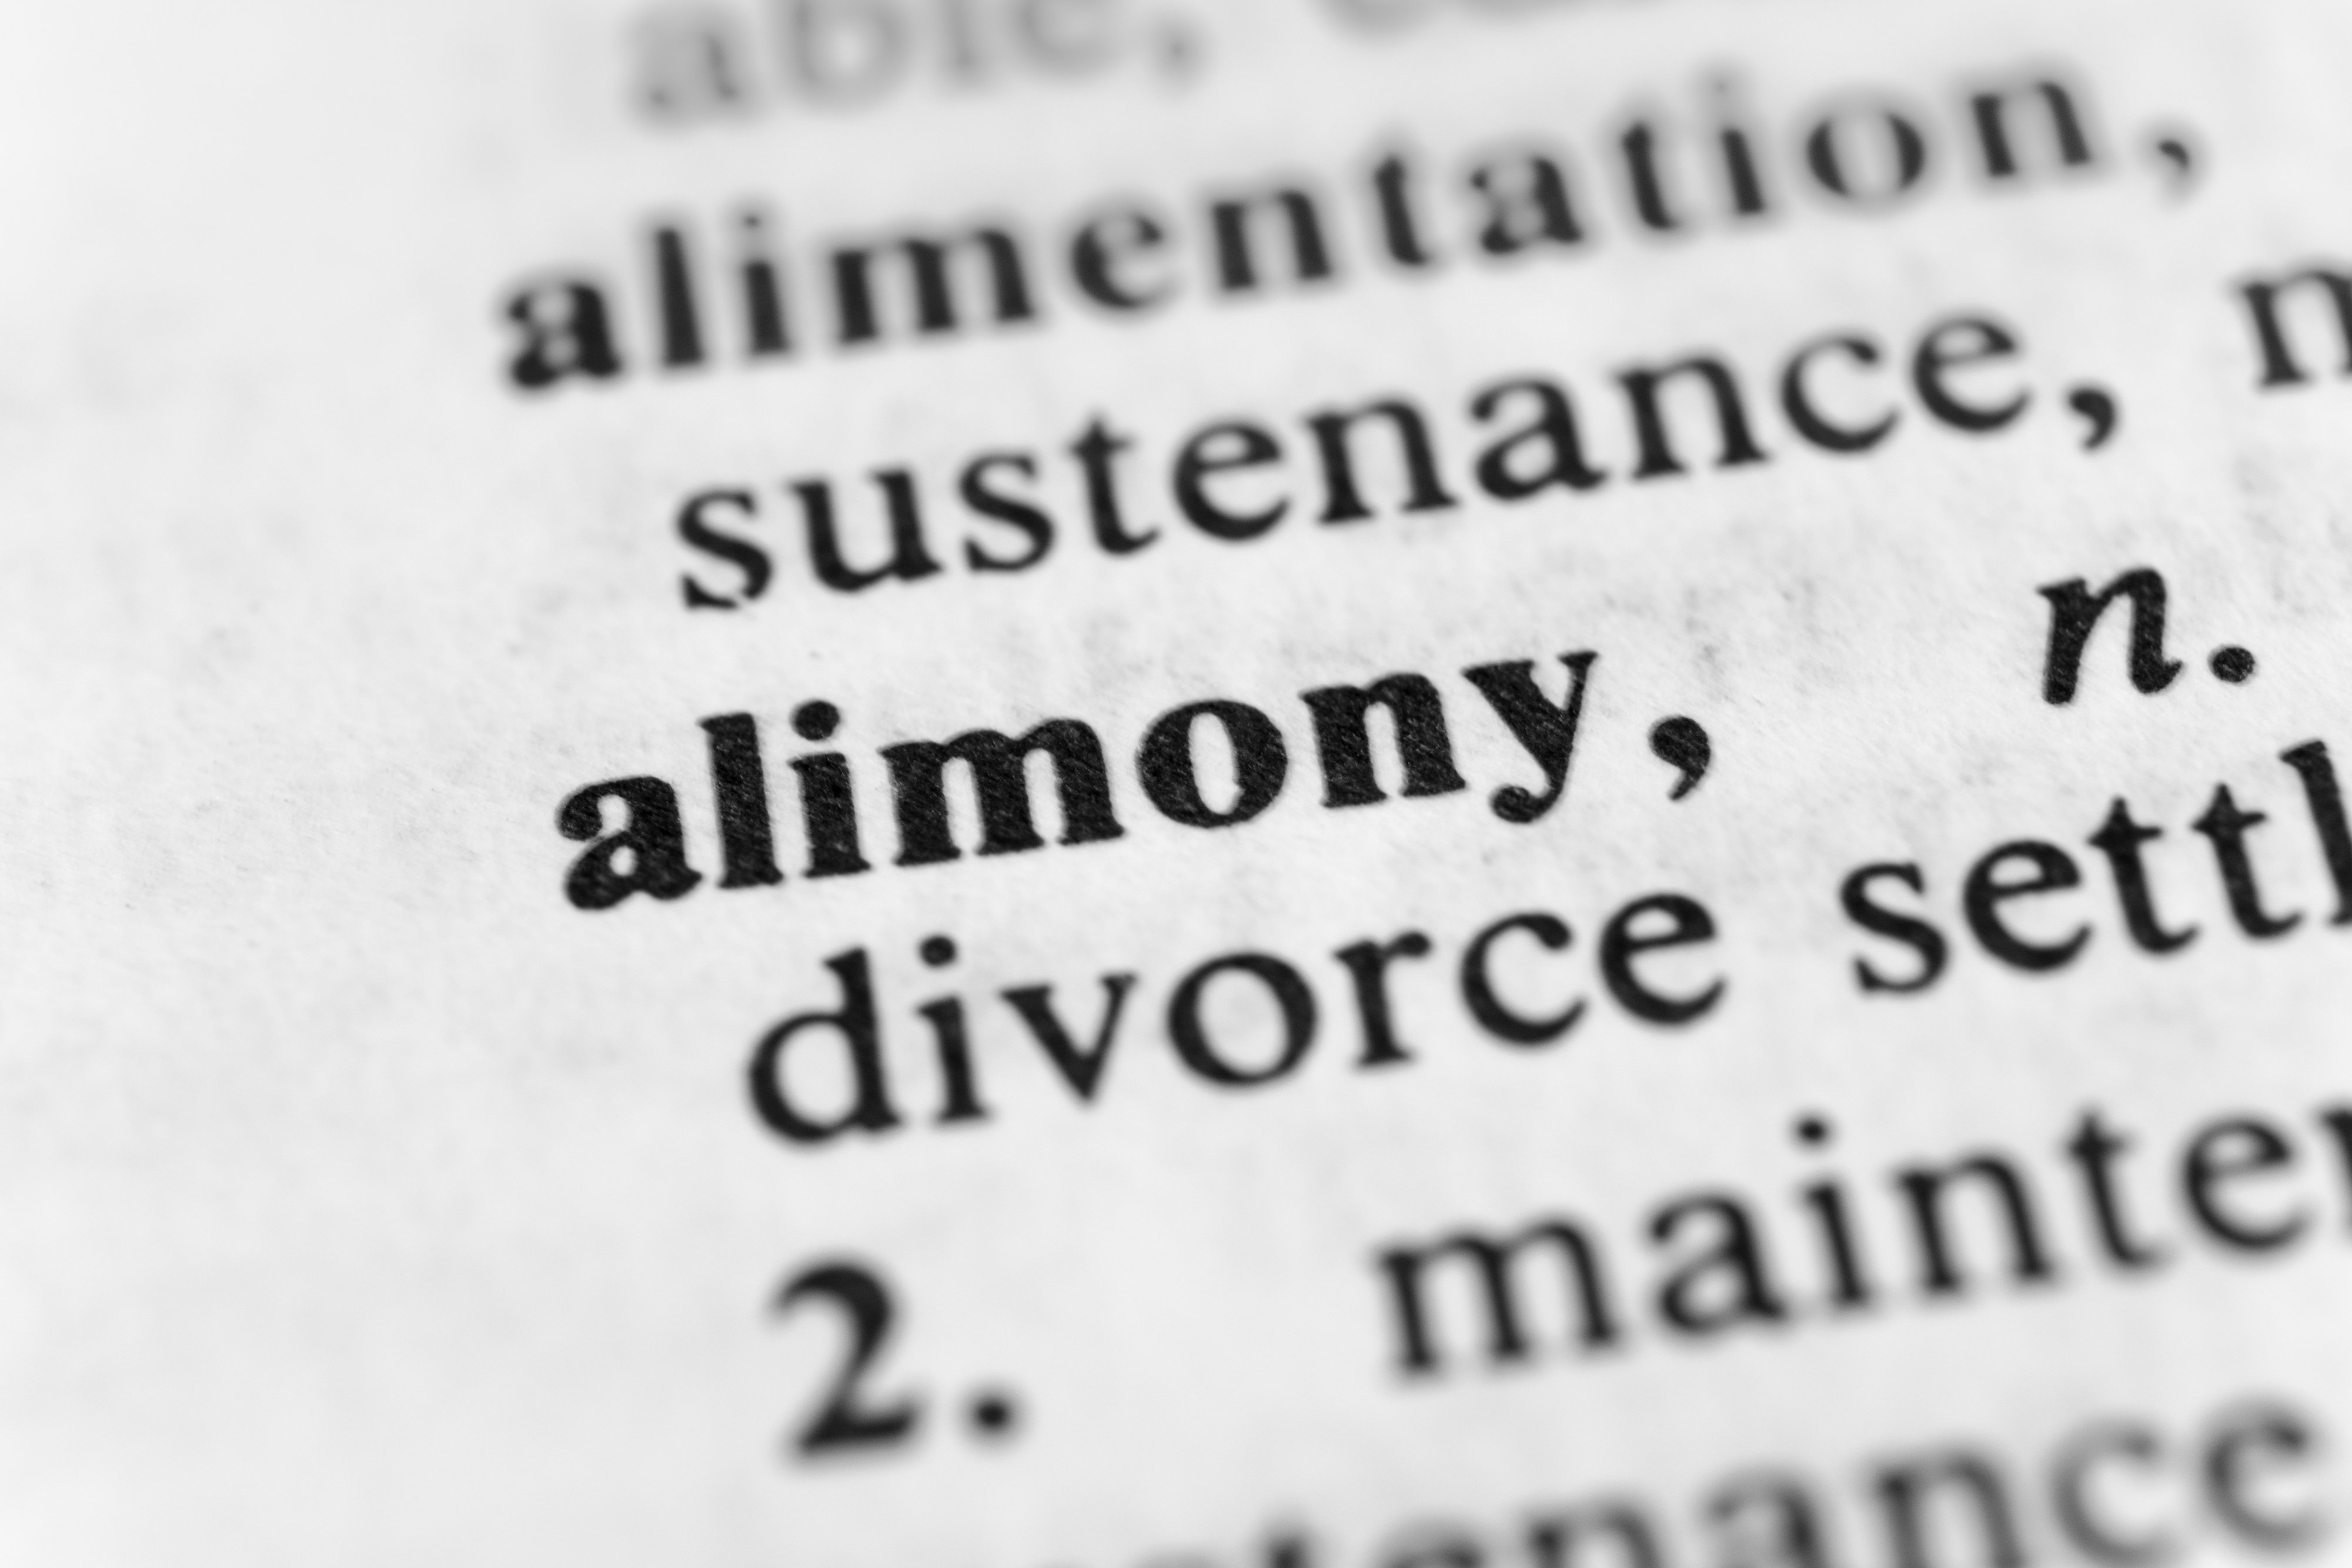 Alimony dictionary definition